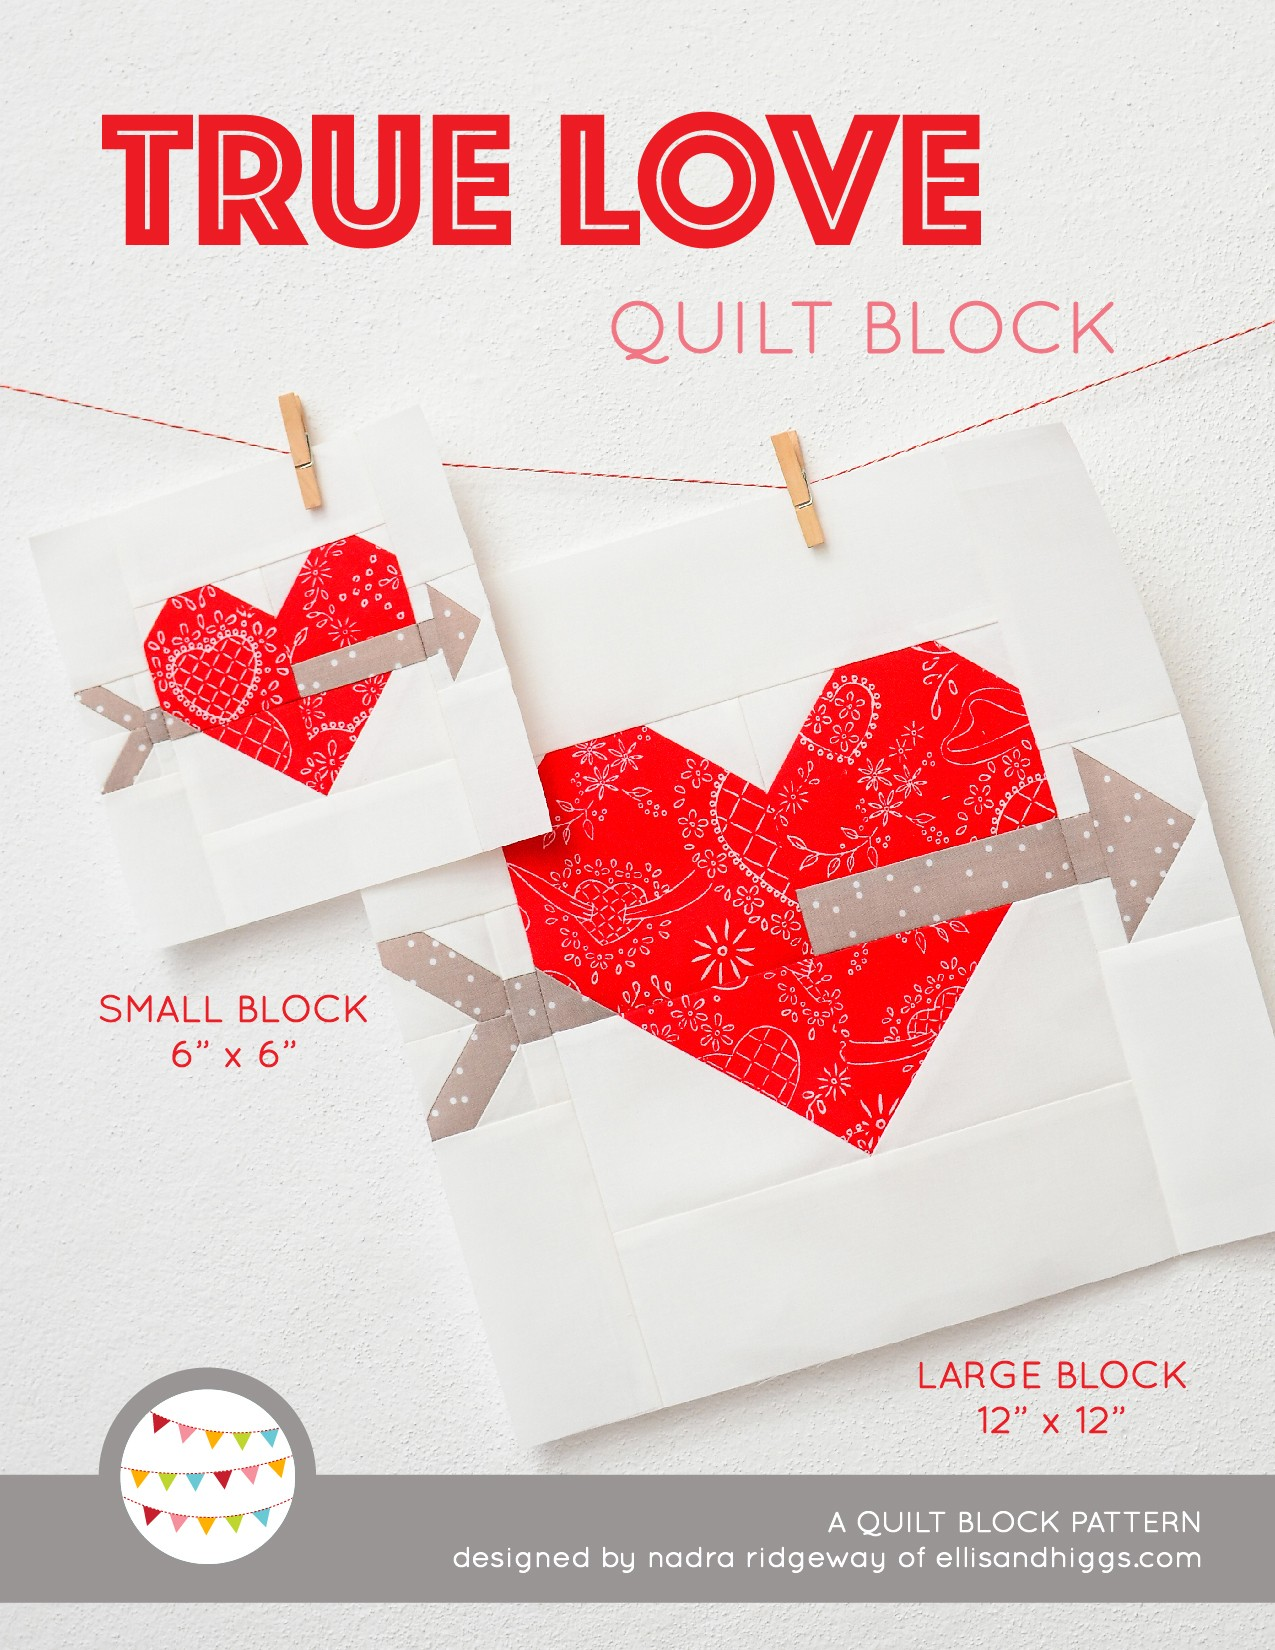 Cupid's Arrow Heart quilt block in two sizes hanging on a wall